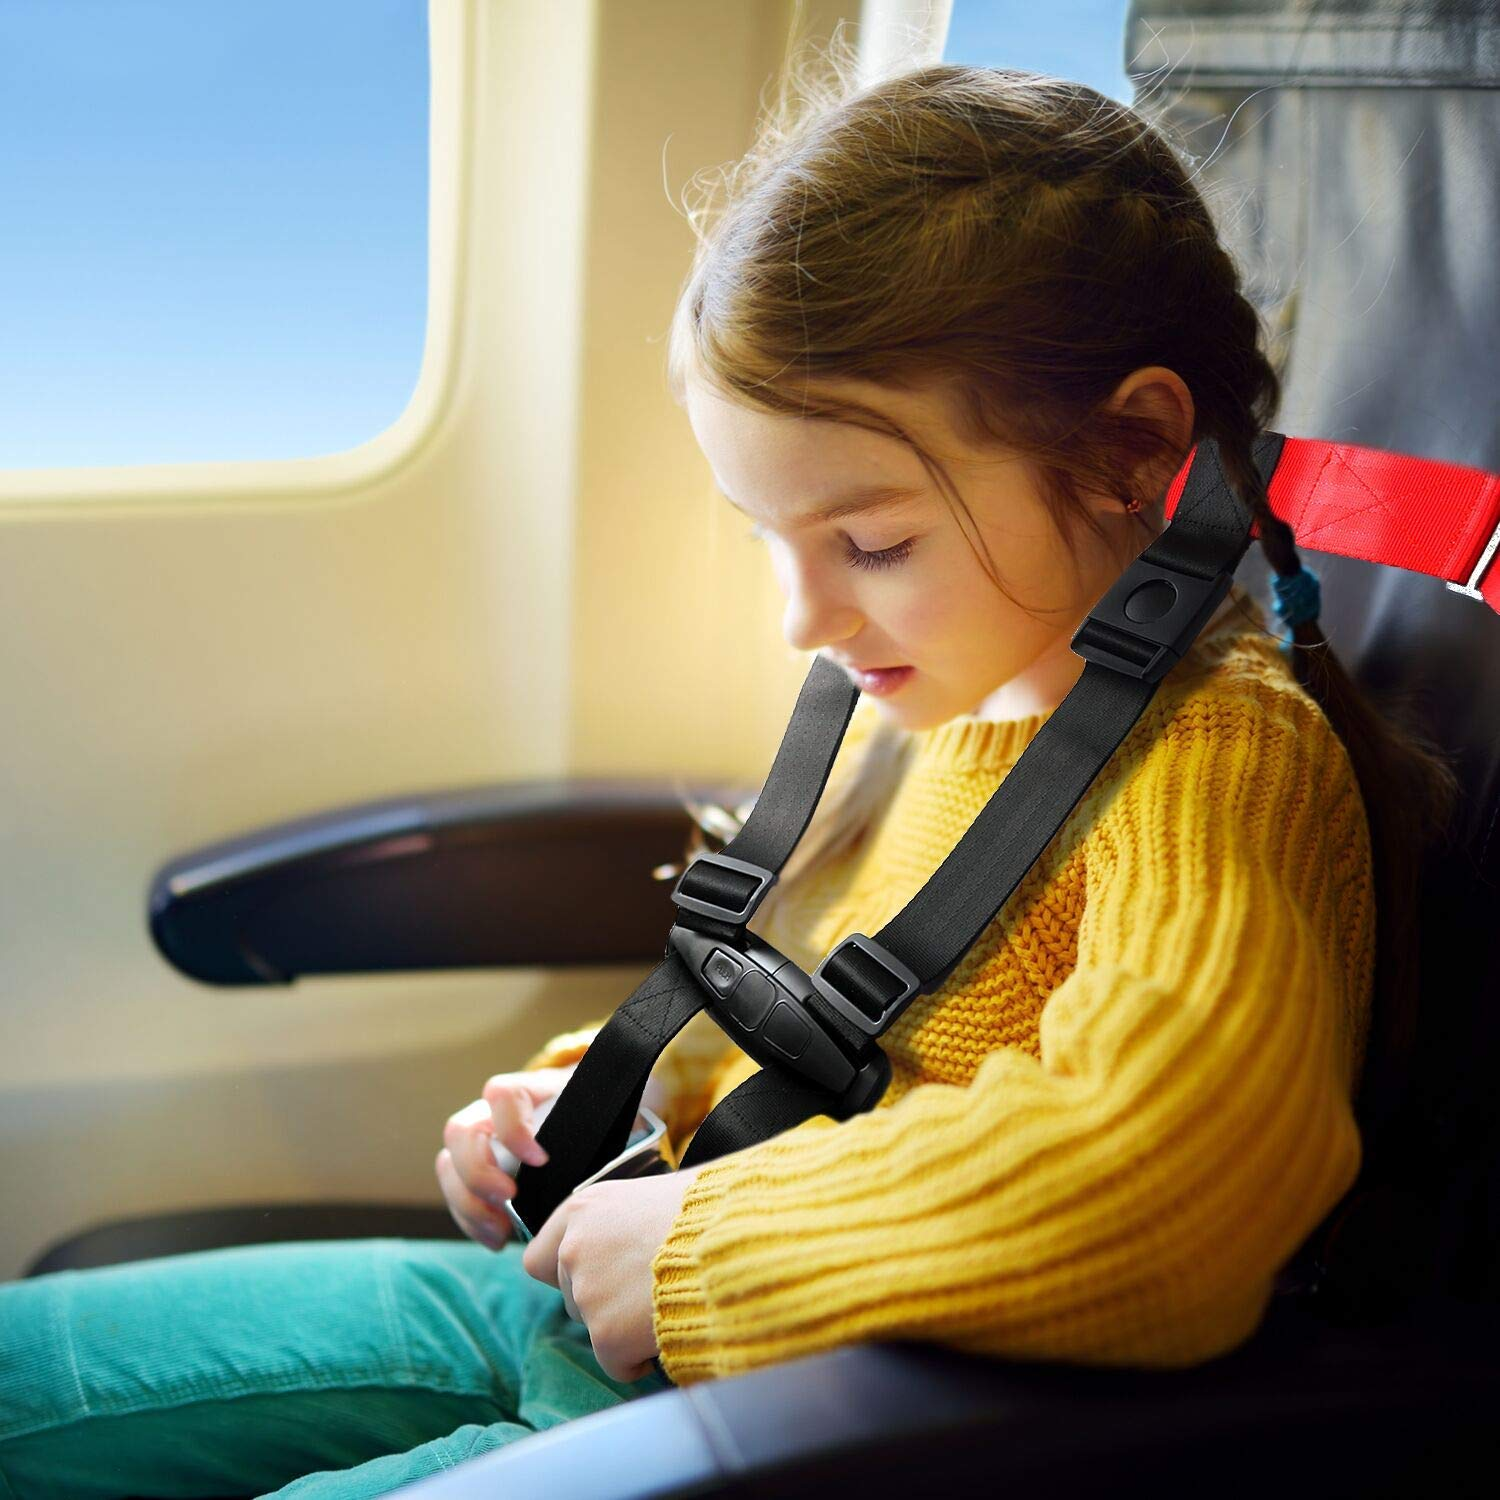 Child Airplane Travel Safety Harness Approved by FAA, Clip Strap Restraint System with Safe Airplane Cares Restraining Fly Travel Plane for Toddler Kids Child Infant by Mestron (Image #2)